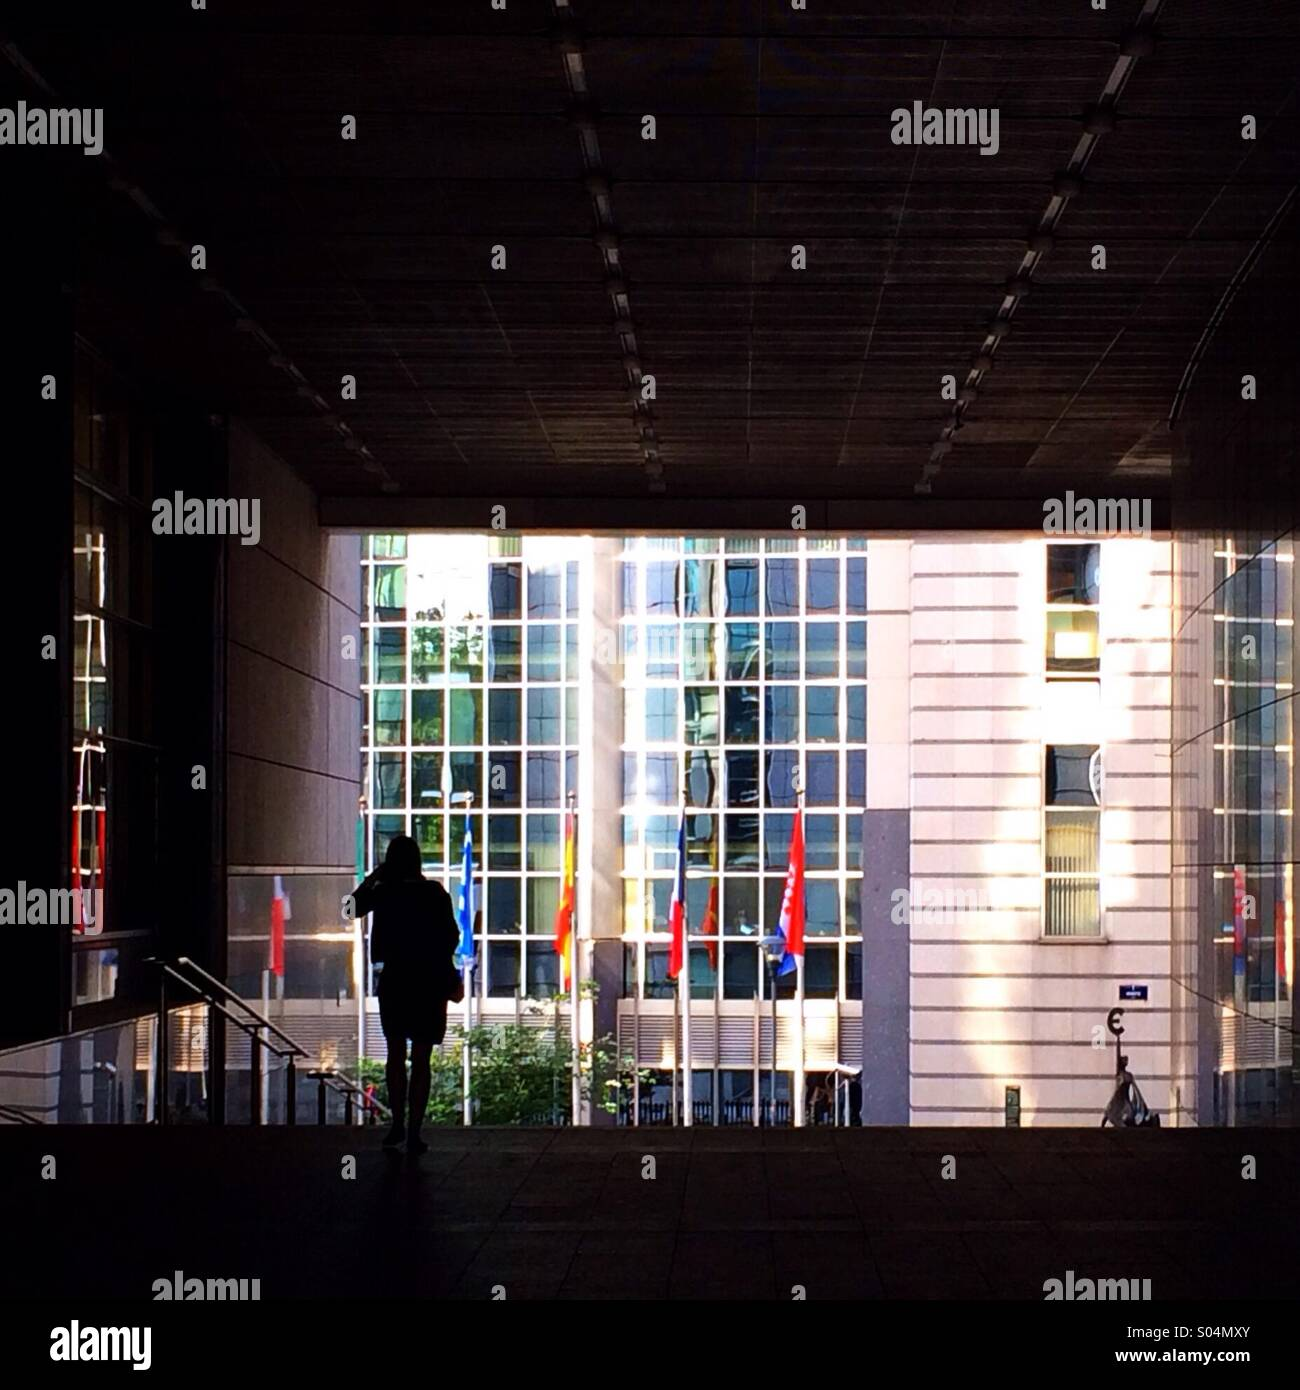 Silhouetted figure outside European Parliament building, Brussels - Stock Image